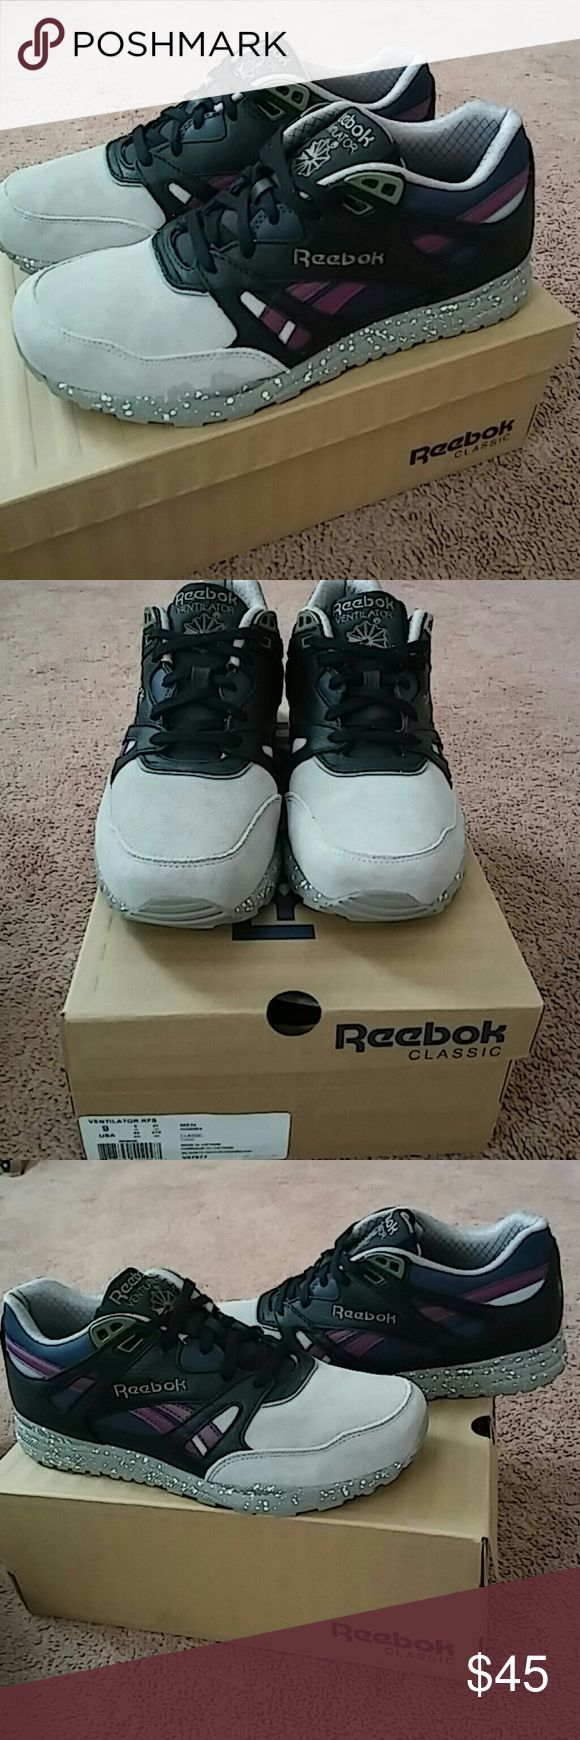 6a2c0c1d1fd6 ... Brand New Reebok Classic Ventilator Black Stl Navy This brand has the  most beautiful Reebok Melody Ehsani sneakers ...